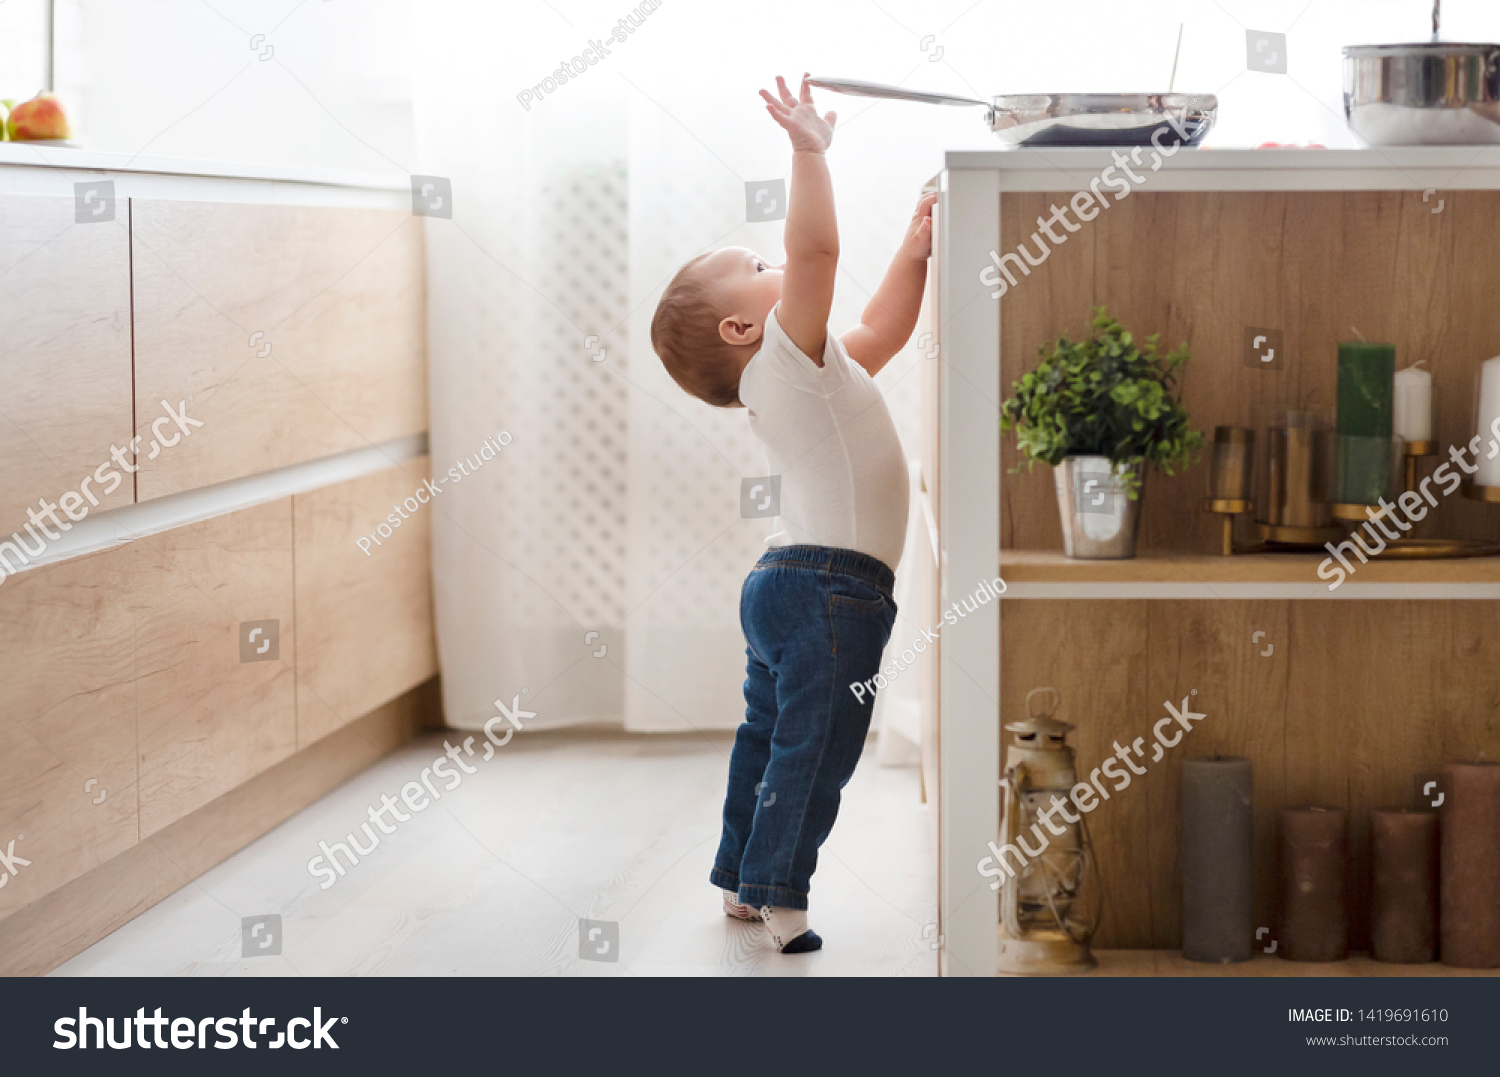 Child safety at home concept. Little baby reaching for hot pan on stove in kitchen, empty space #1419691610